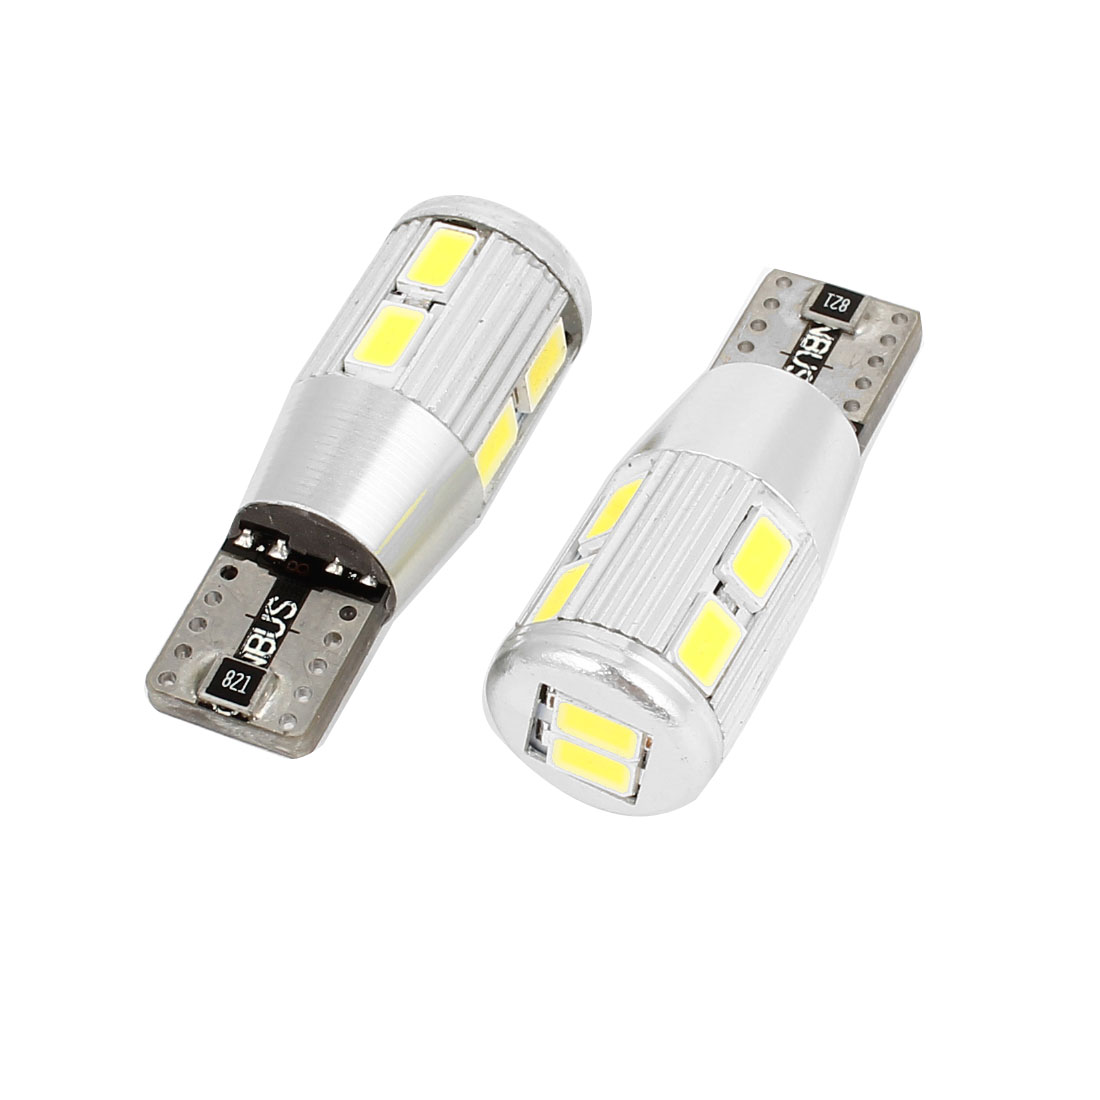 Pair T10 Van 5630 SMD 10 LED Side Marker Parking Light Turn Bulb White internal